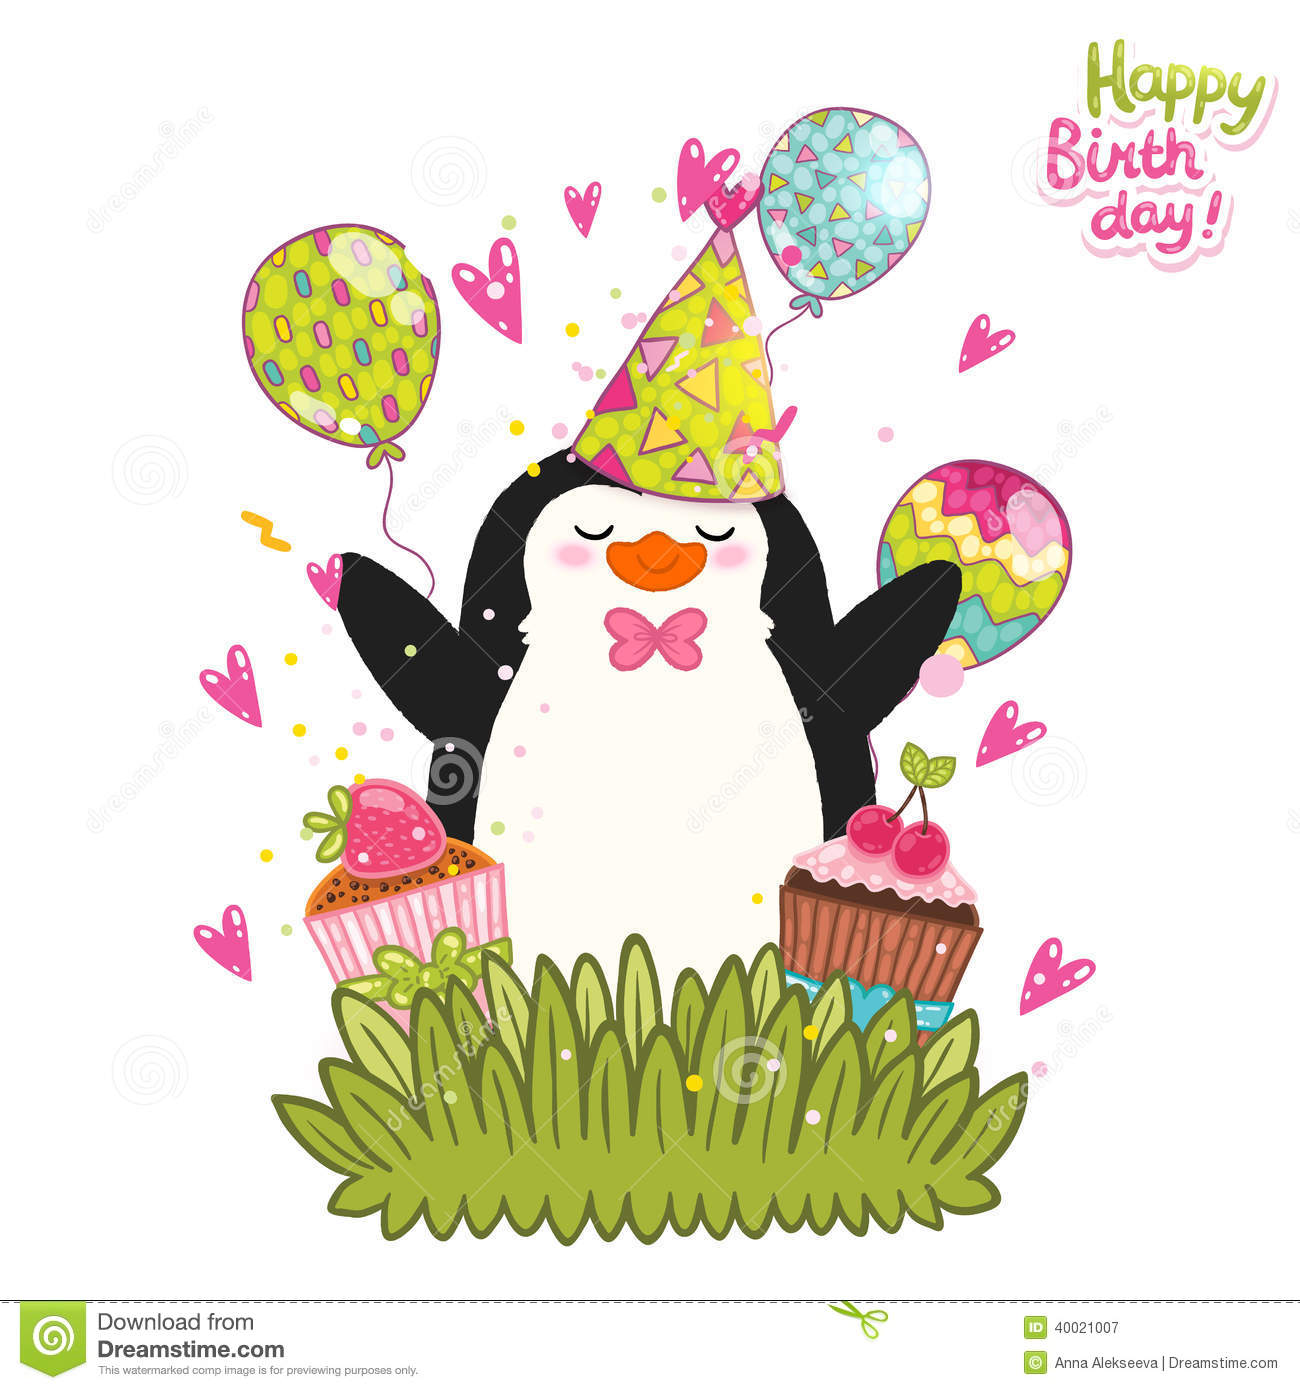 Happy Birthday Card Background With Cute Penguin. Stock Vector - Image: 40021007